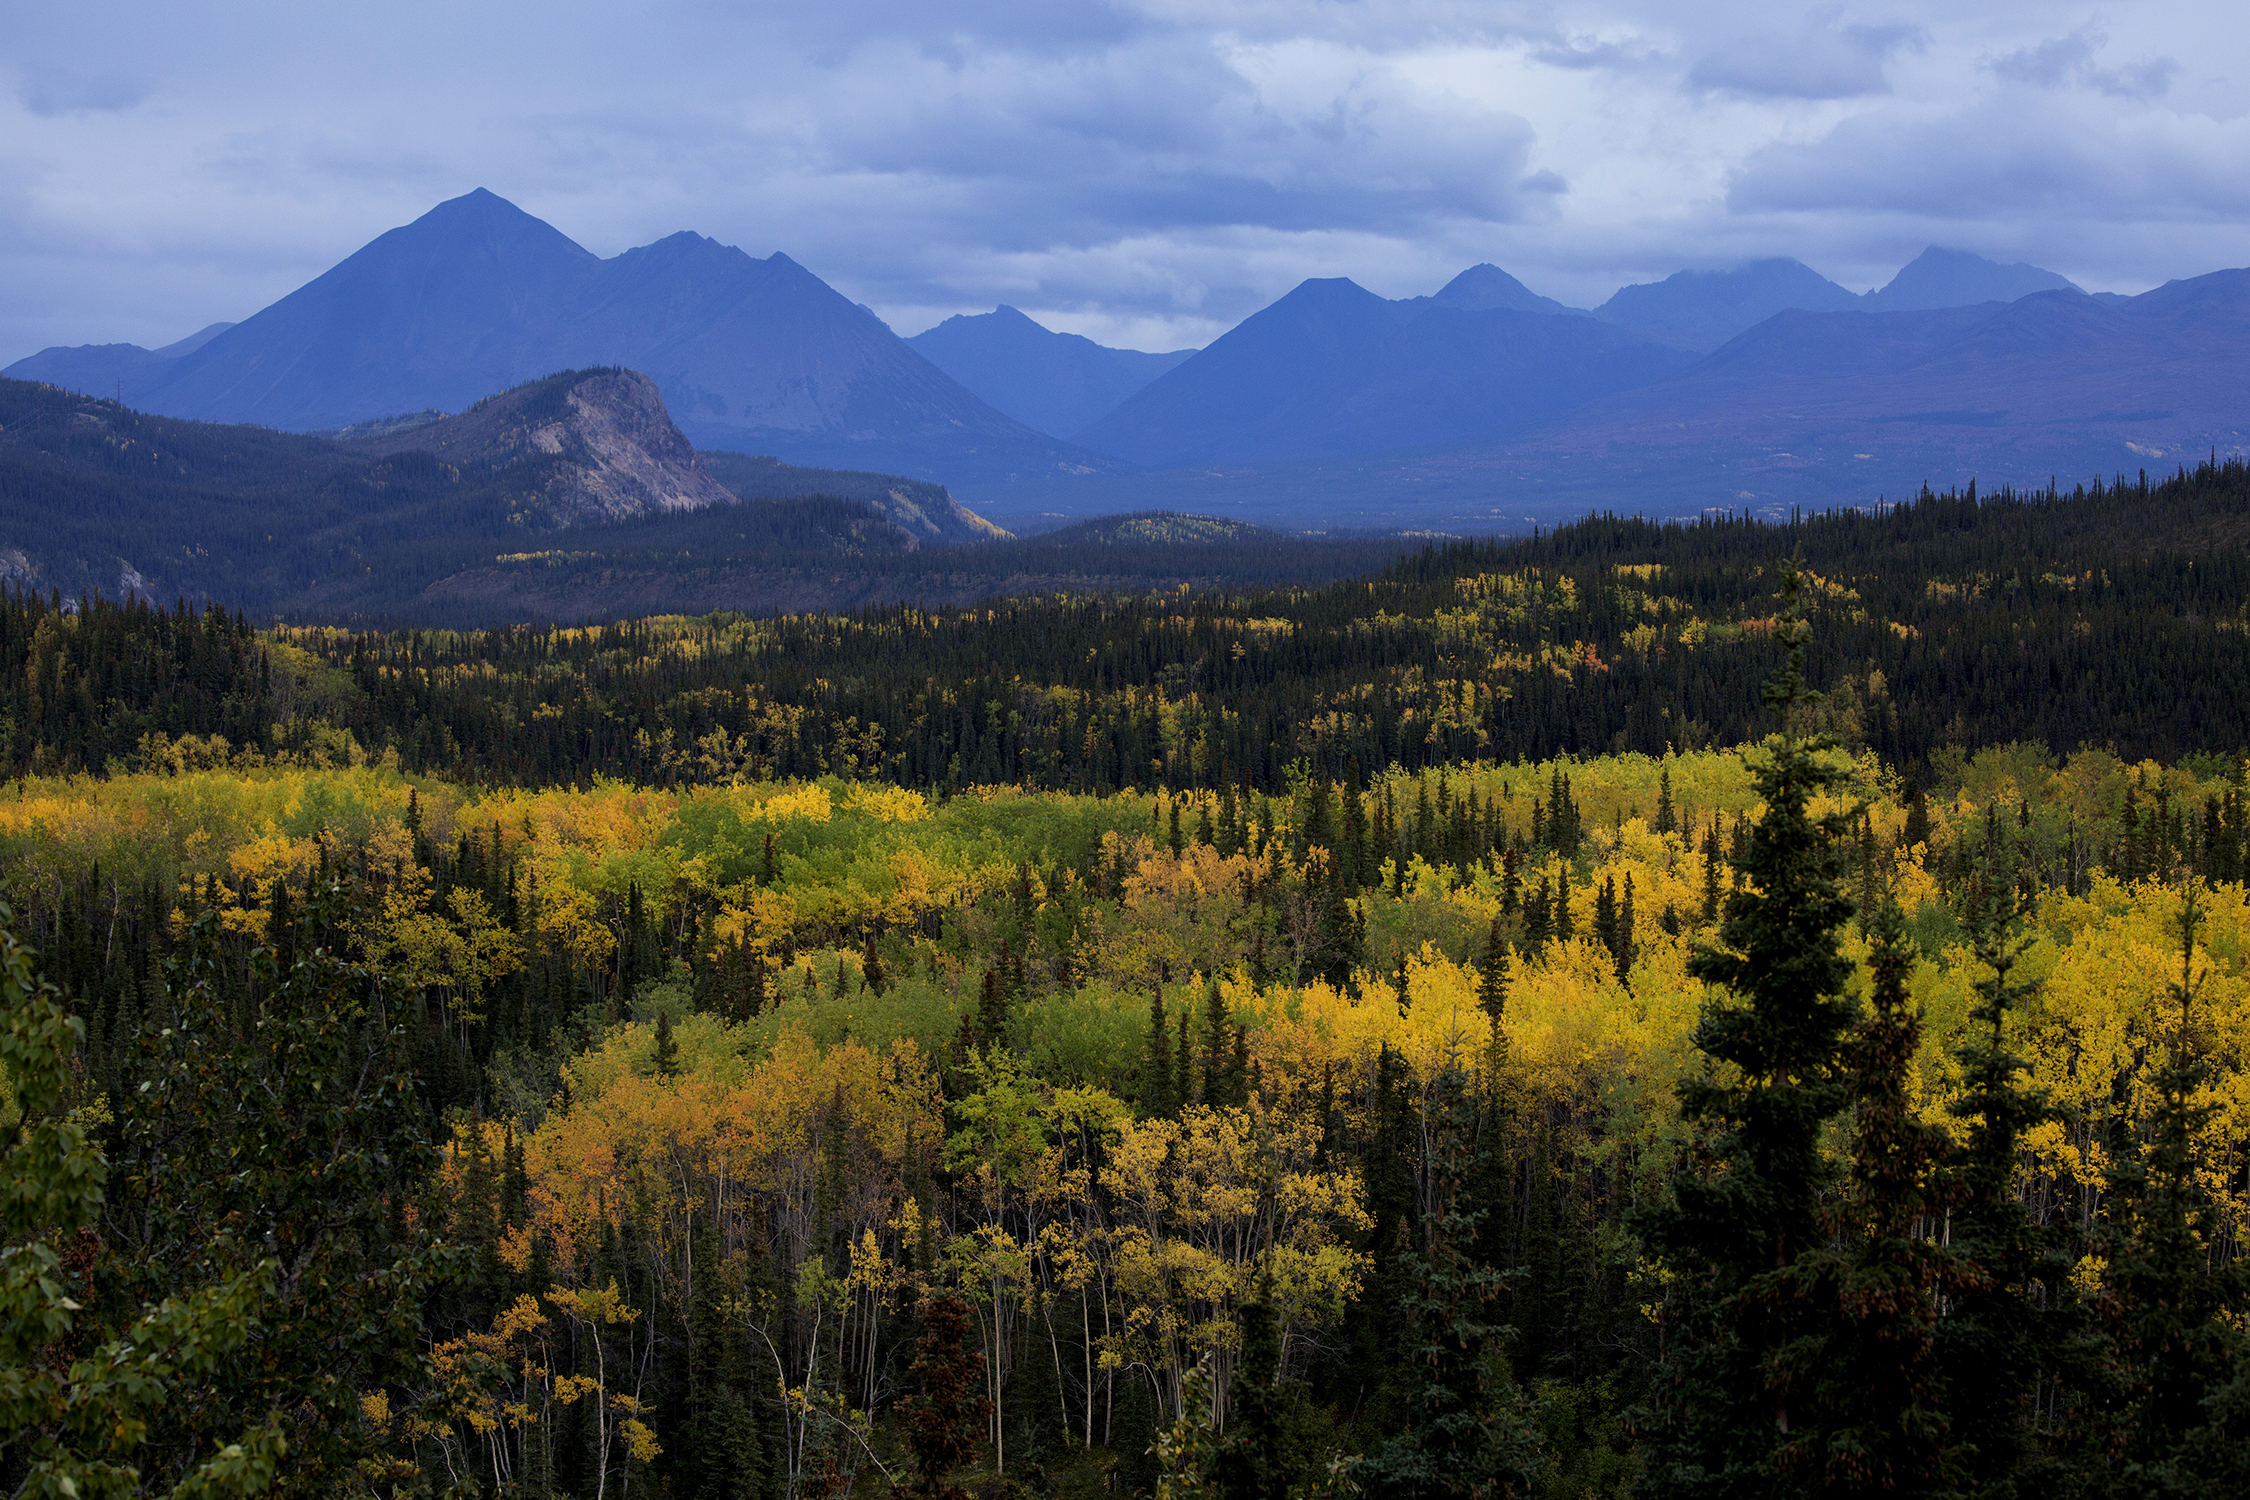 Autumn turns the leaves to a golden yellow in Alaska's Denali National Park and Preserve located just 250 miles south of the Arctic Circle. In this subarctic wilderness the short autumns burst with vibrant colors of birch and aspen. © Photo by Gail Fisher